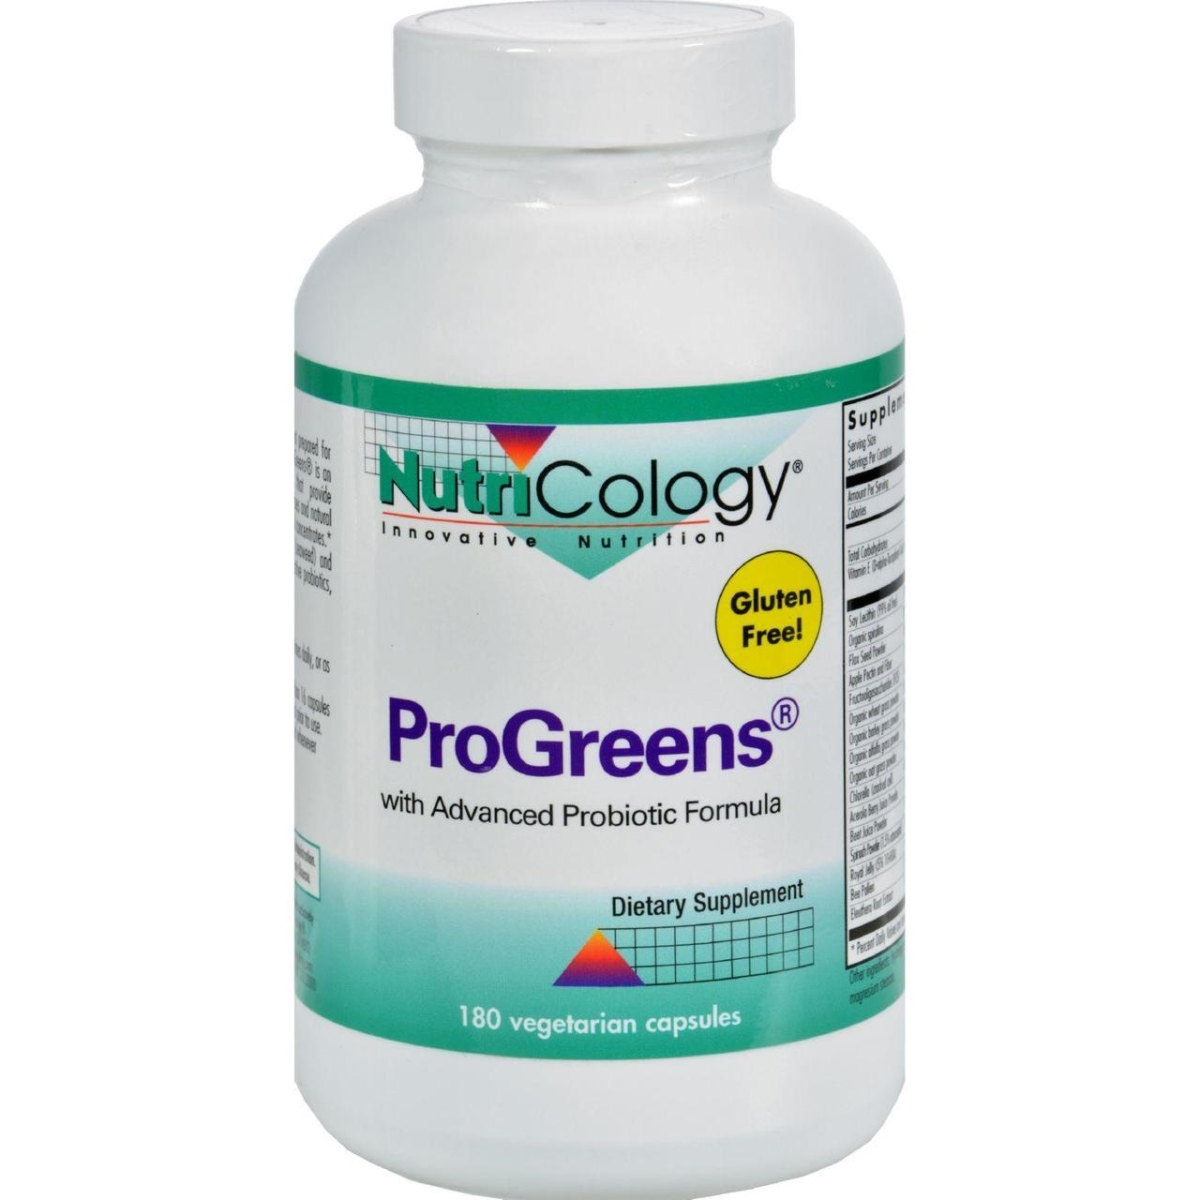 Nutricology HG0889089 Progreens with Advanced Probiotics Formula - 180 Capsules